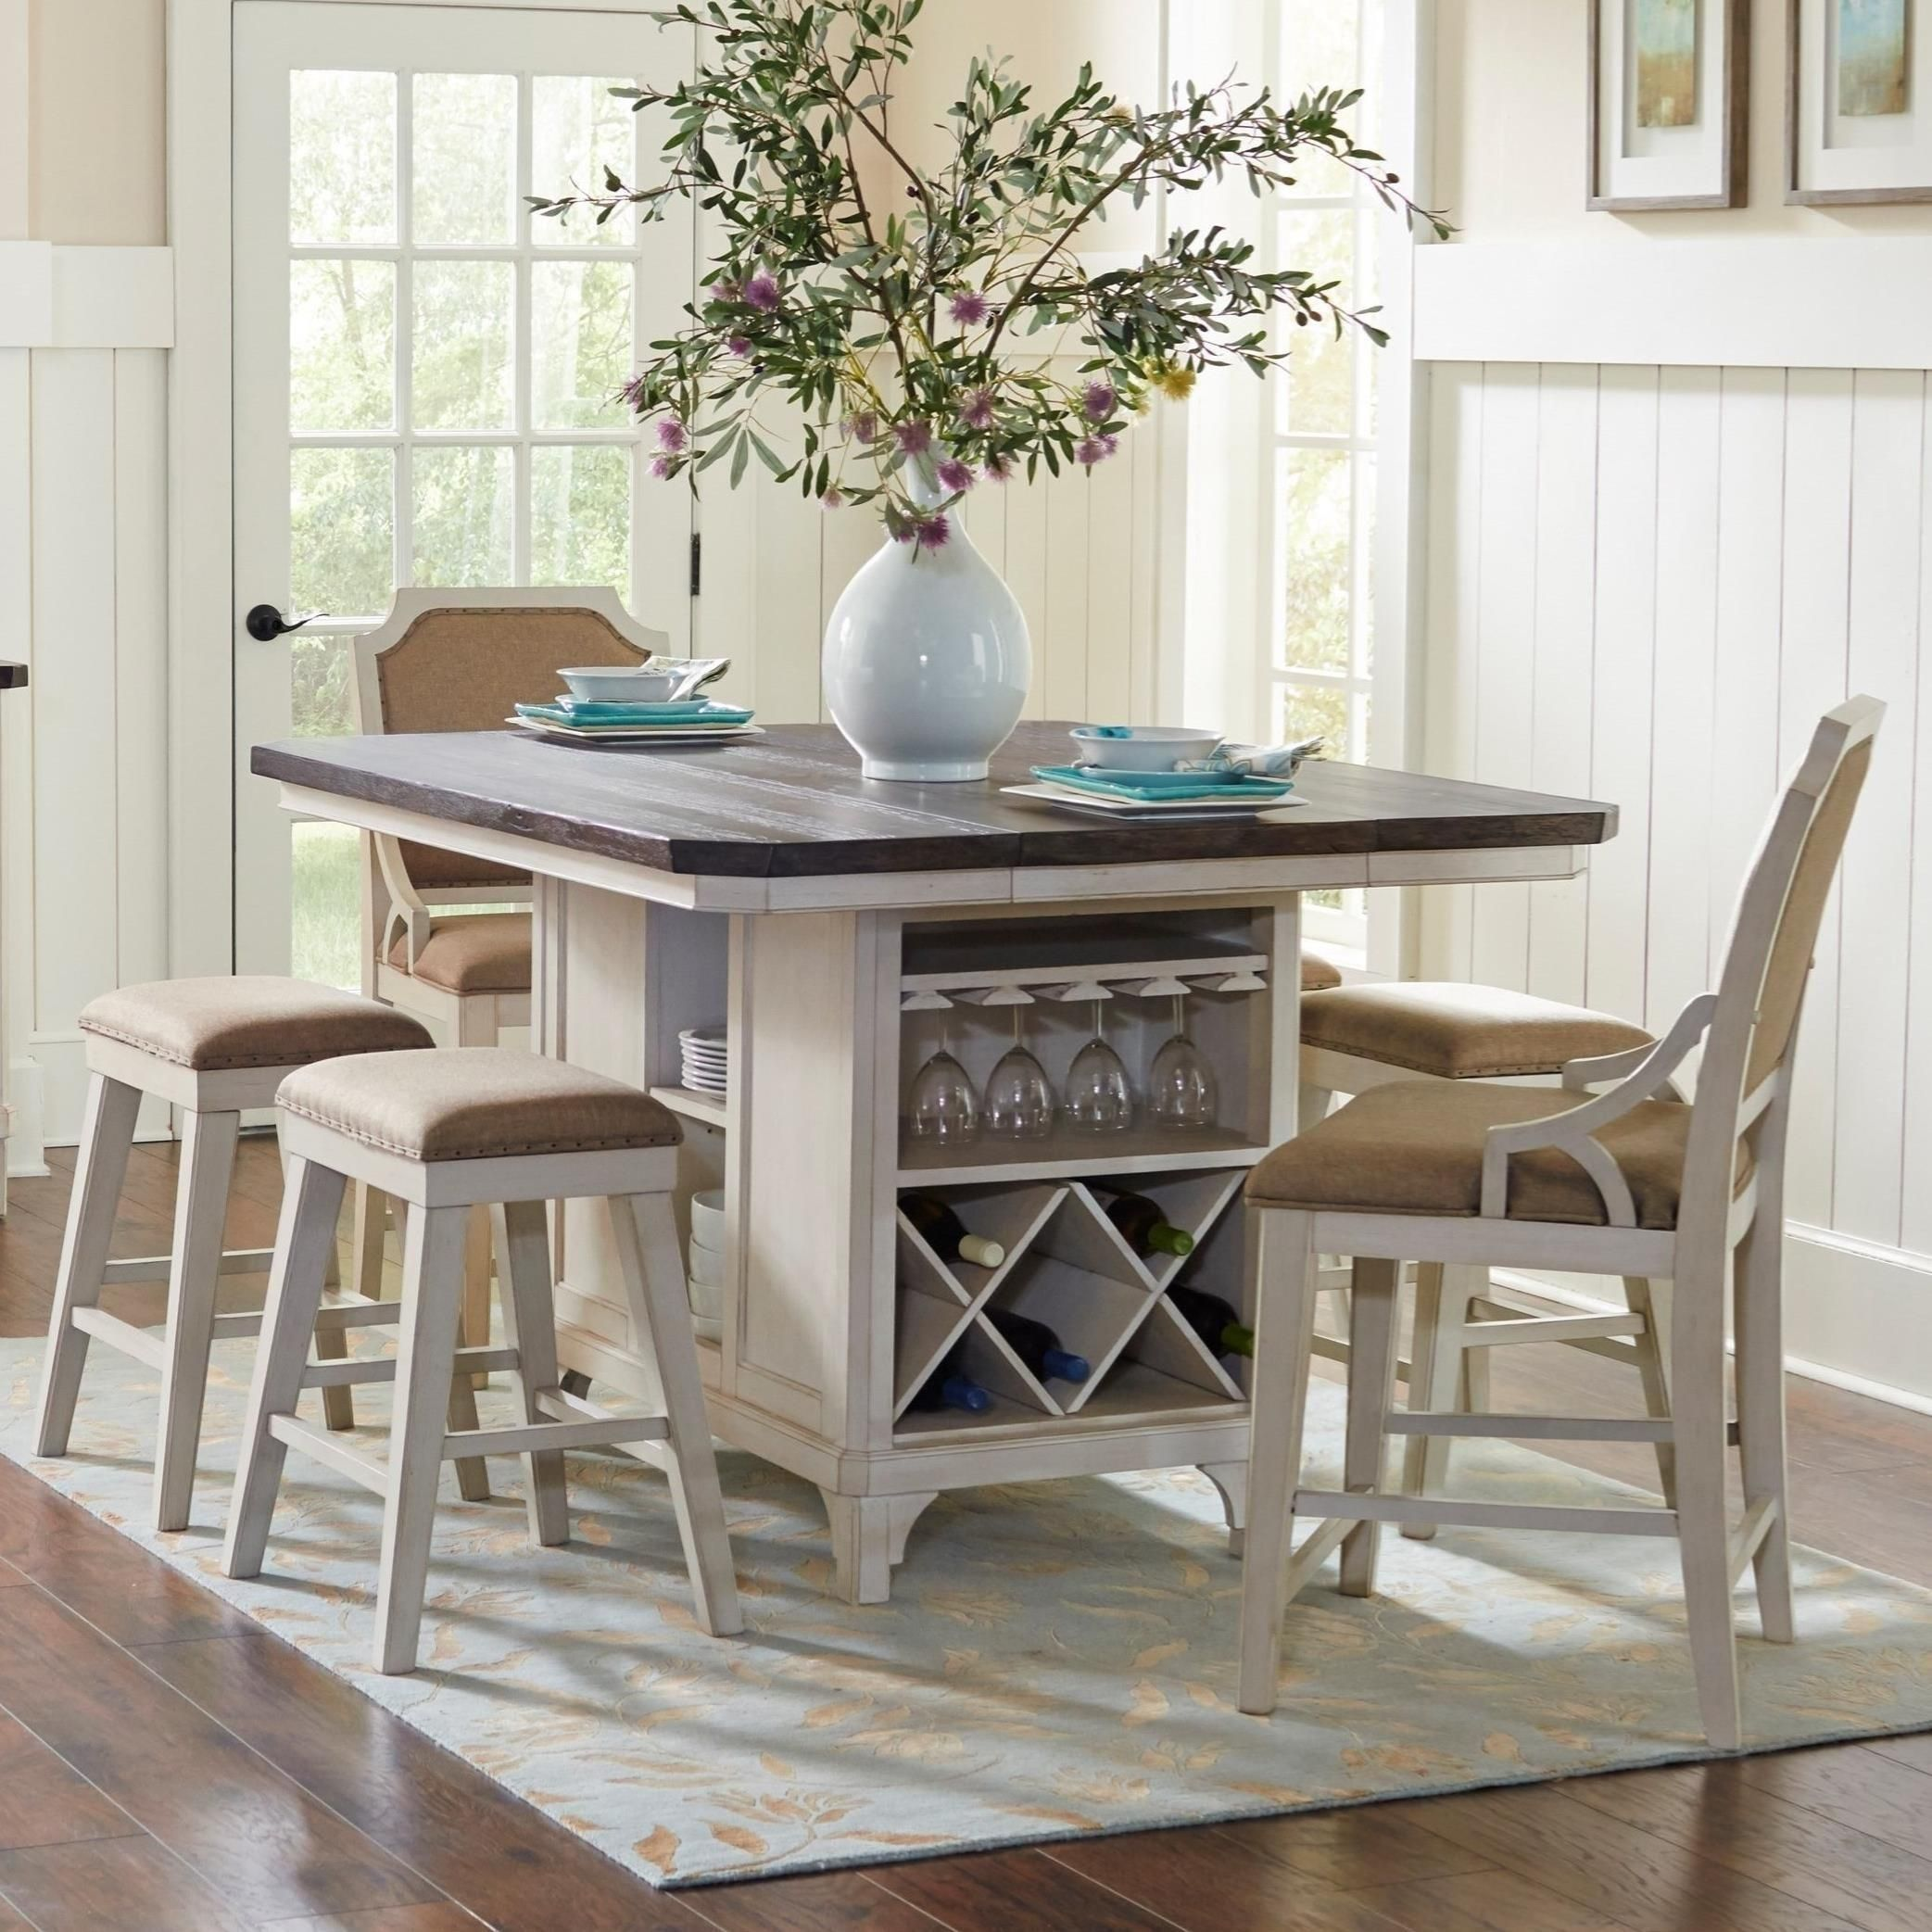 Pin By Haminy Silva On My Kitchen Kitchen Table With Storage Small Kitchen Tables Kitchen Island Table